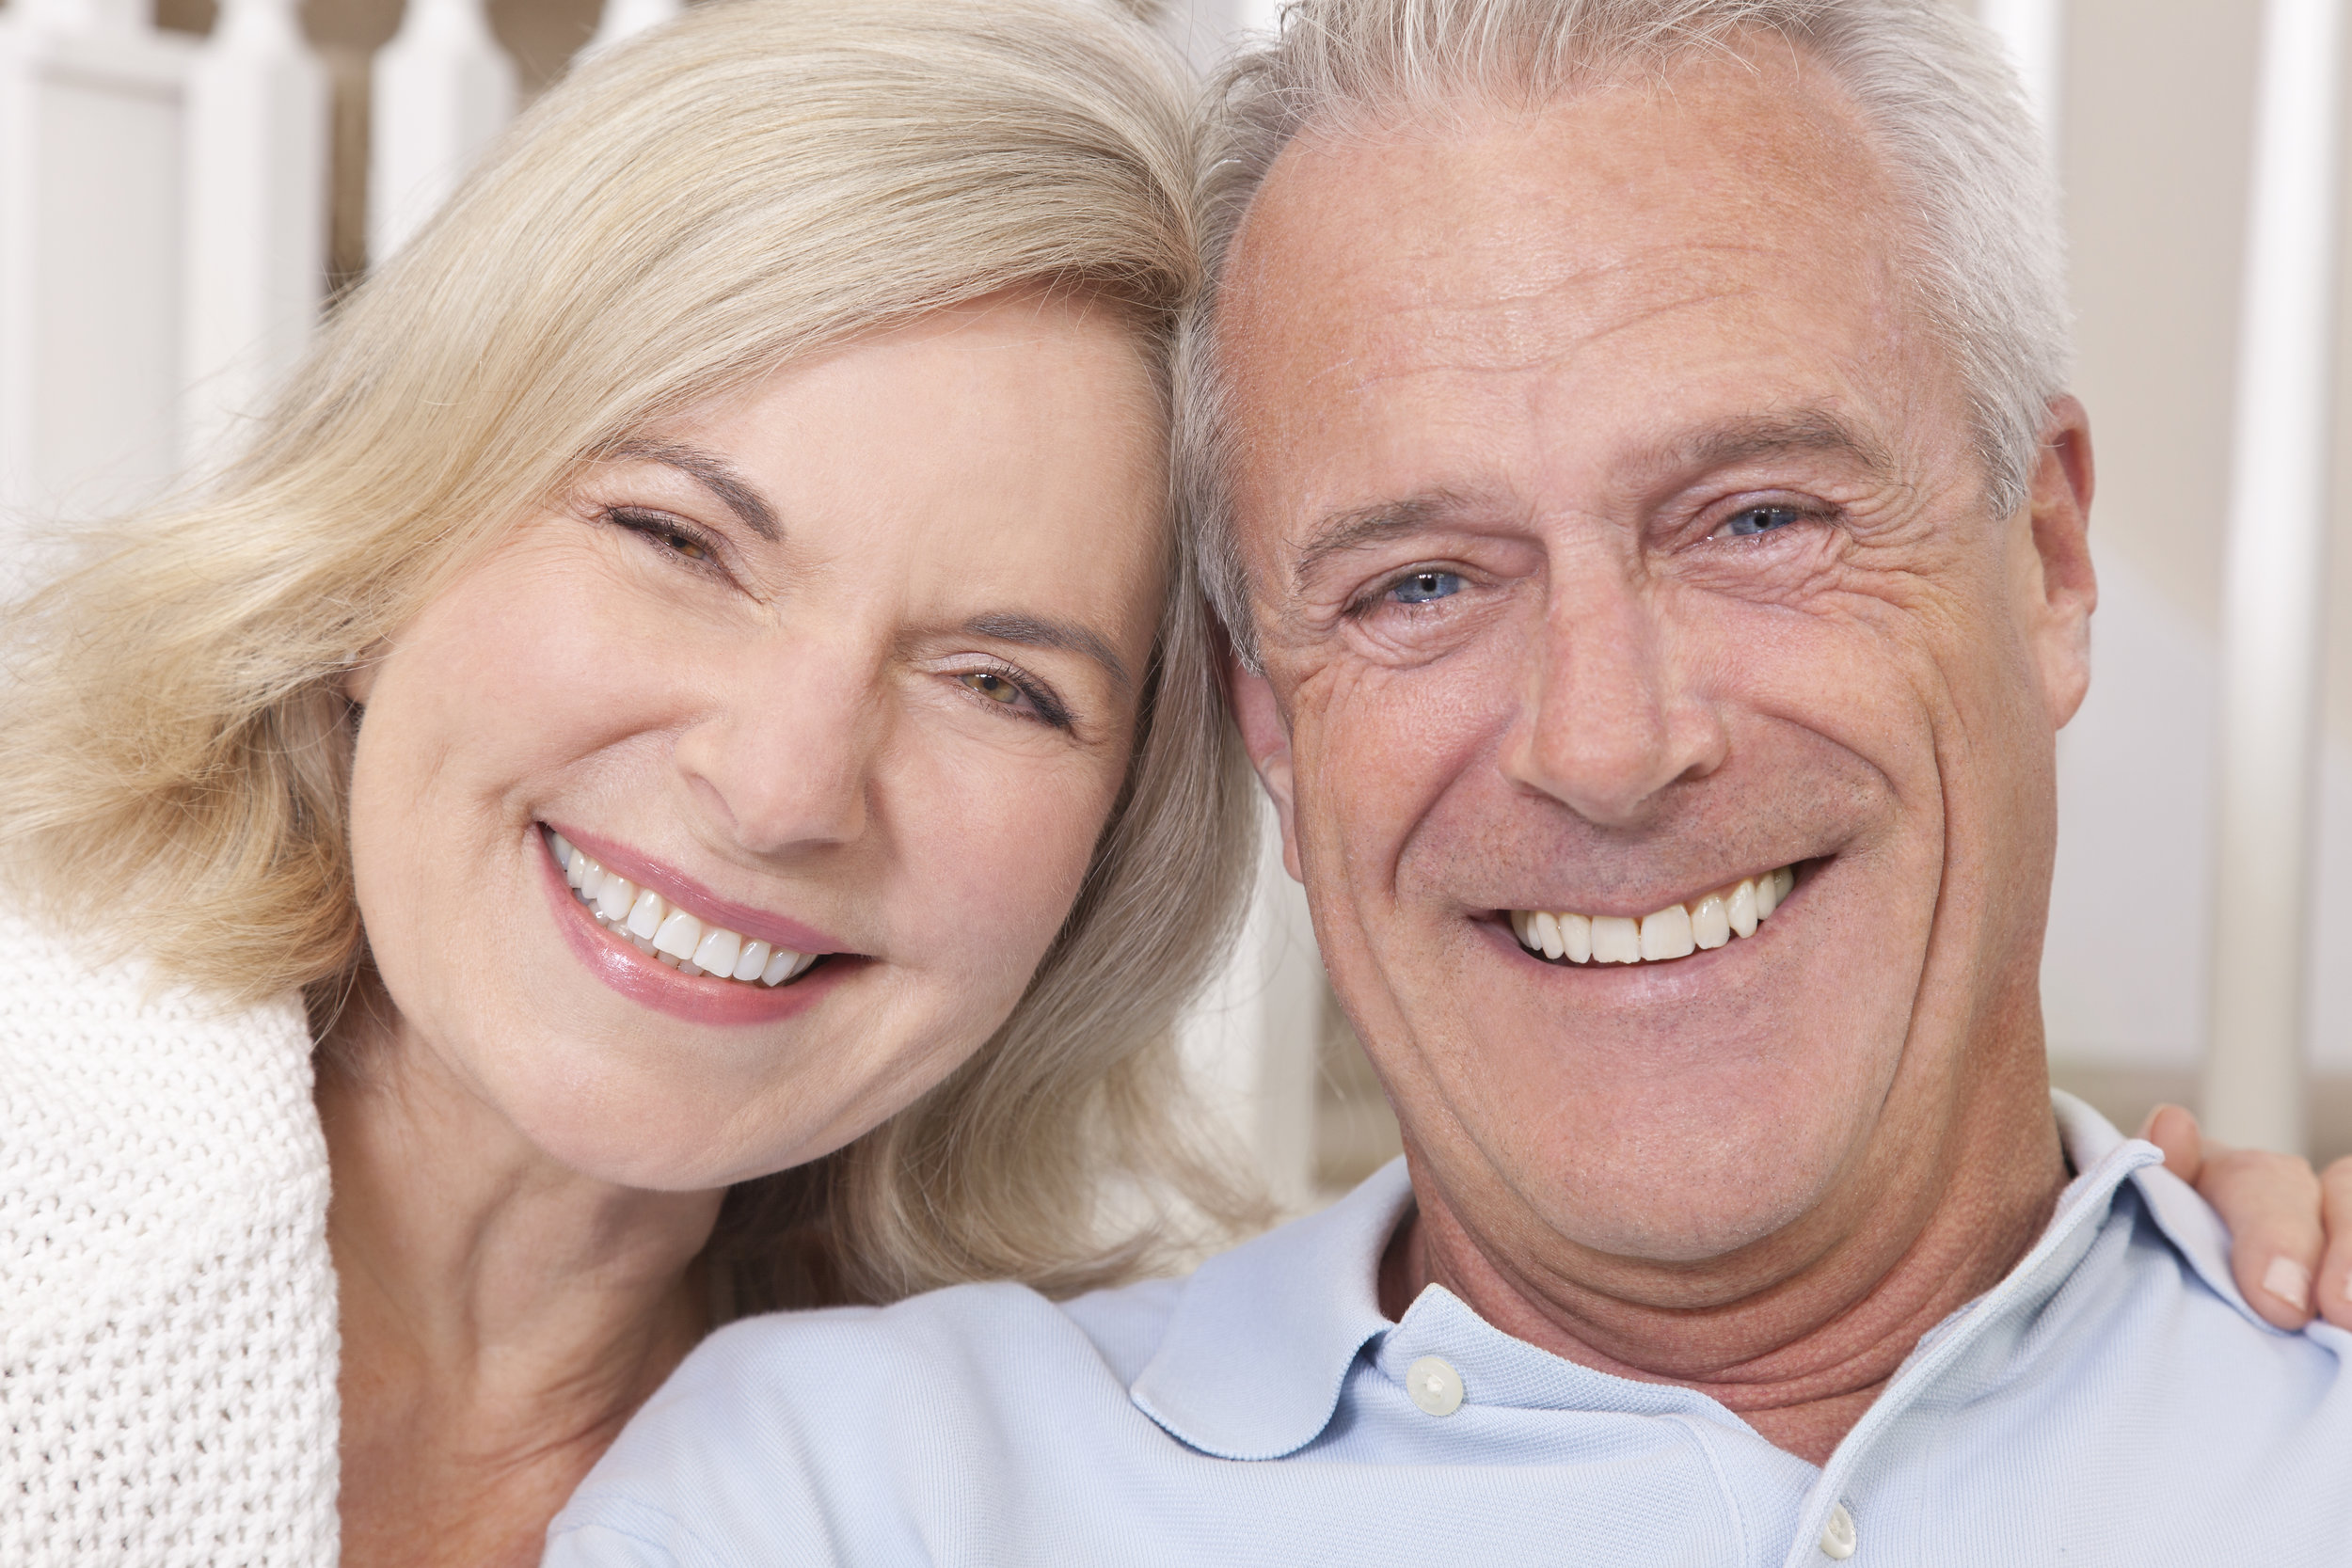 Financing options and payment plans for dental services at Three Rivers Family Dentistry in Covington Louisiana